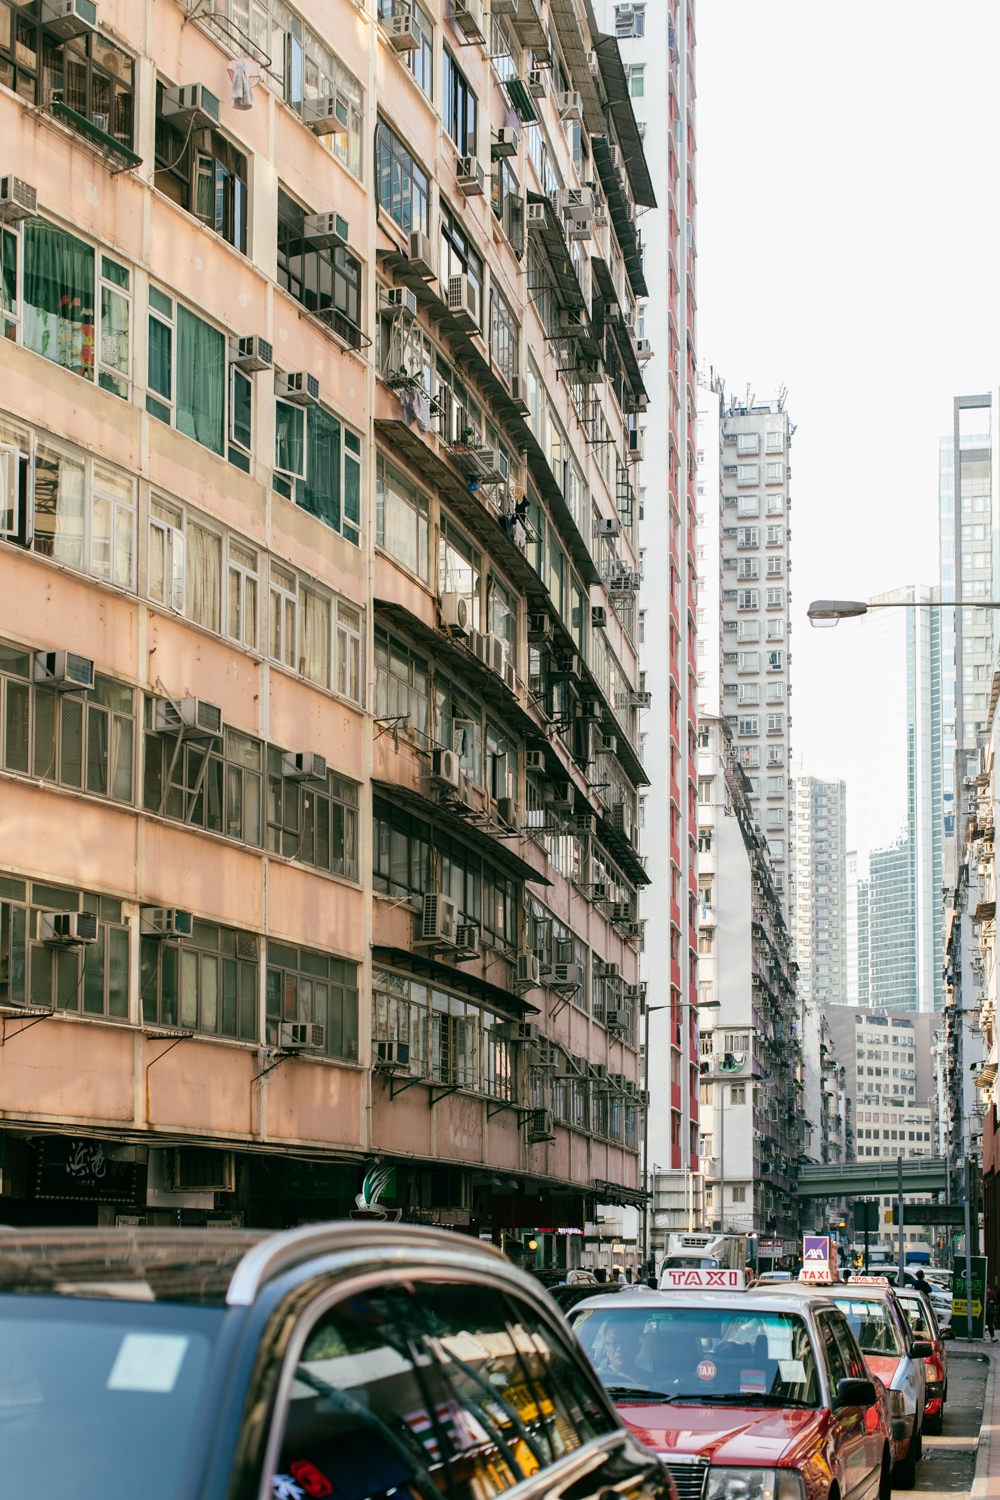 Hong Kong street photography – old buildings and taxis